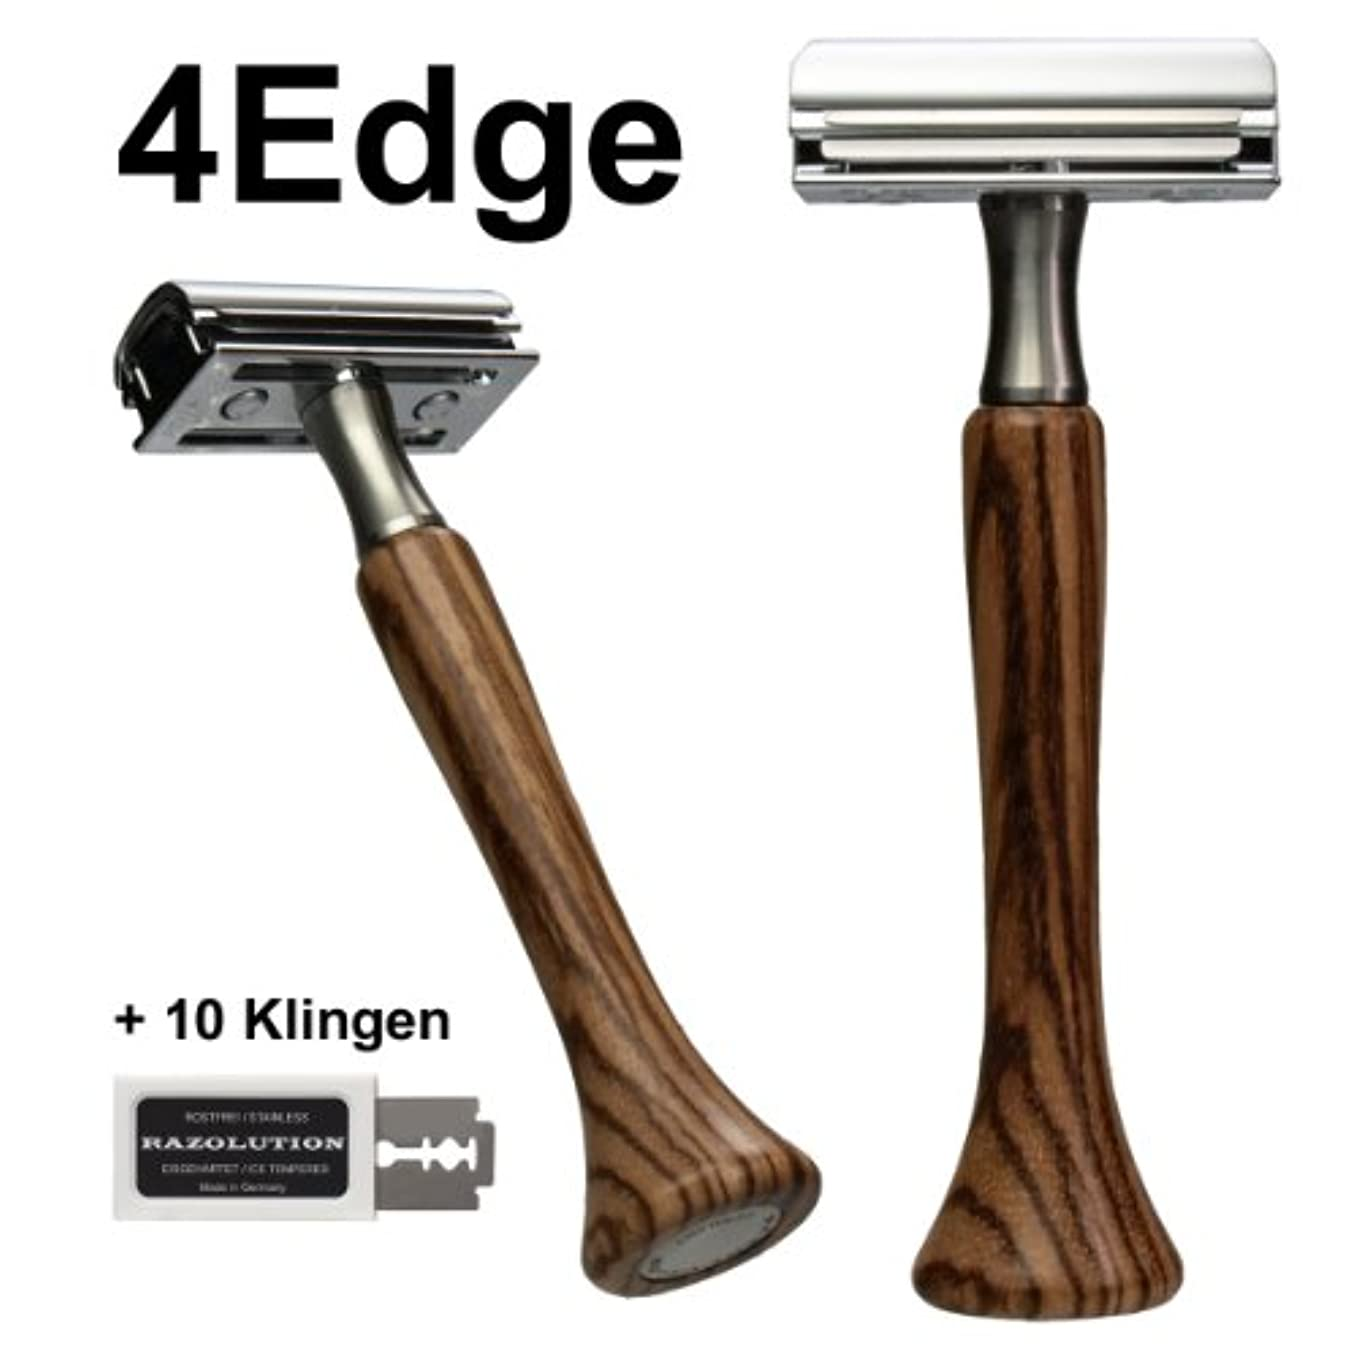 RAZOLUTION 4Edge Safety razor, Zebrano handle